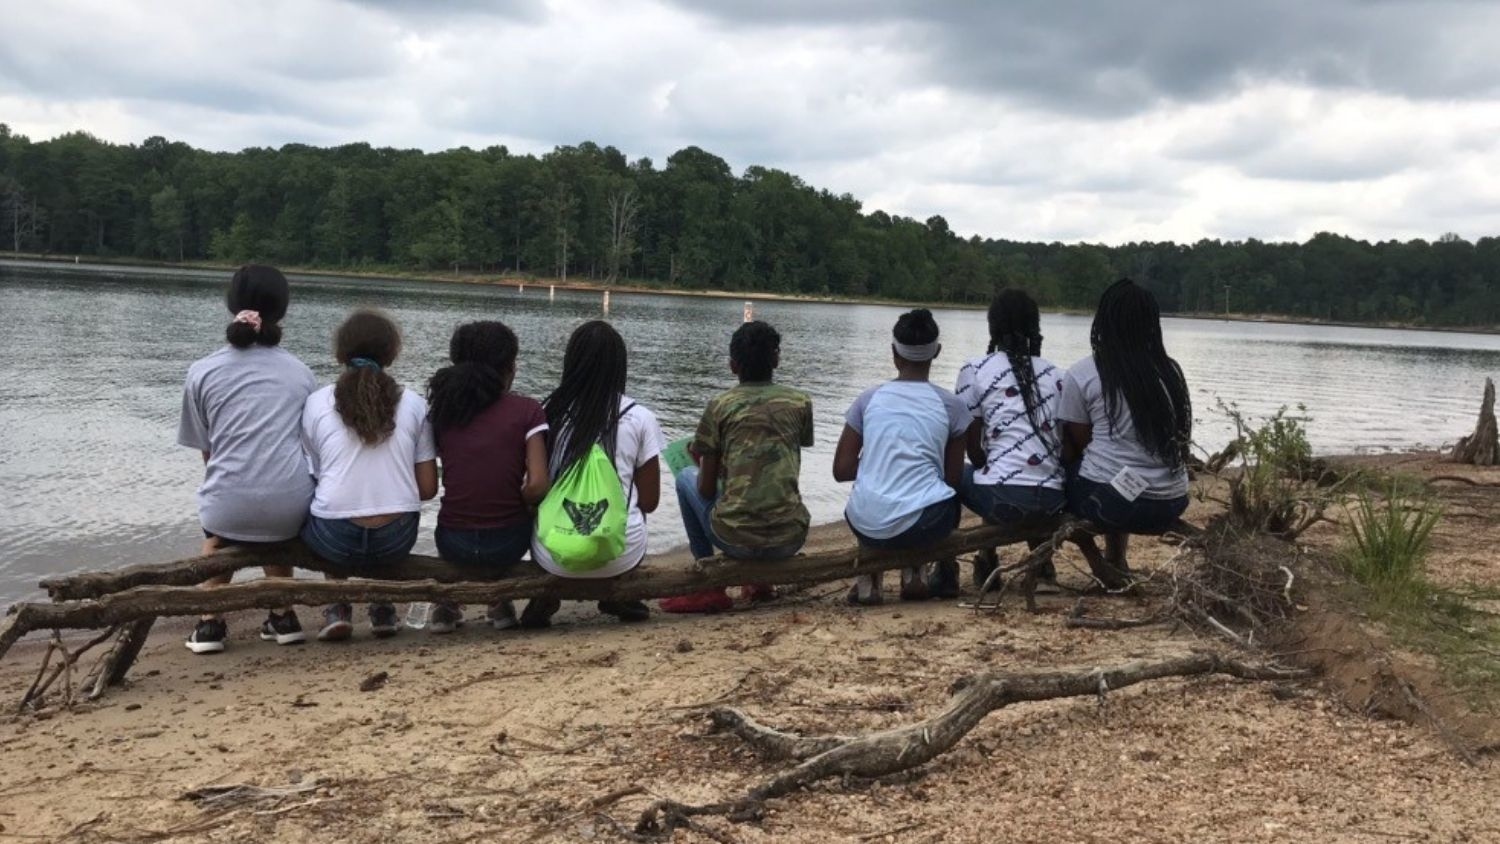 Ecologists out in nature - Black Ecologists Look to Offer Support, Recruit Next Generation - Forestry Department at NC State University